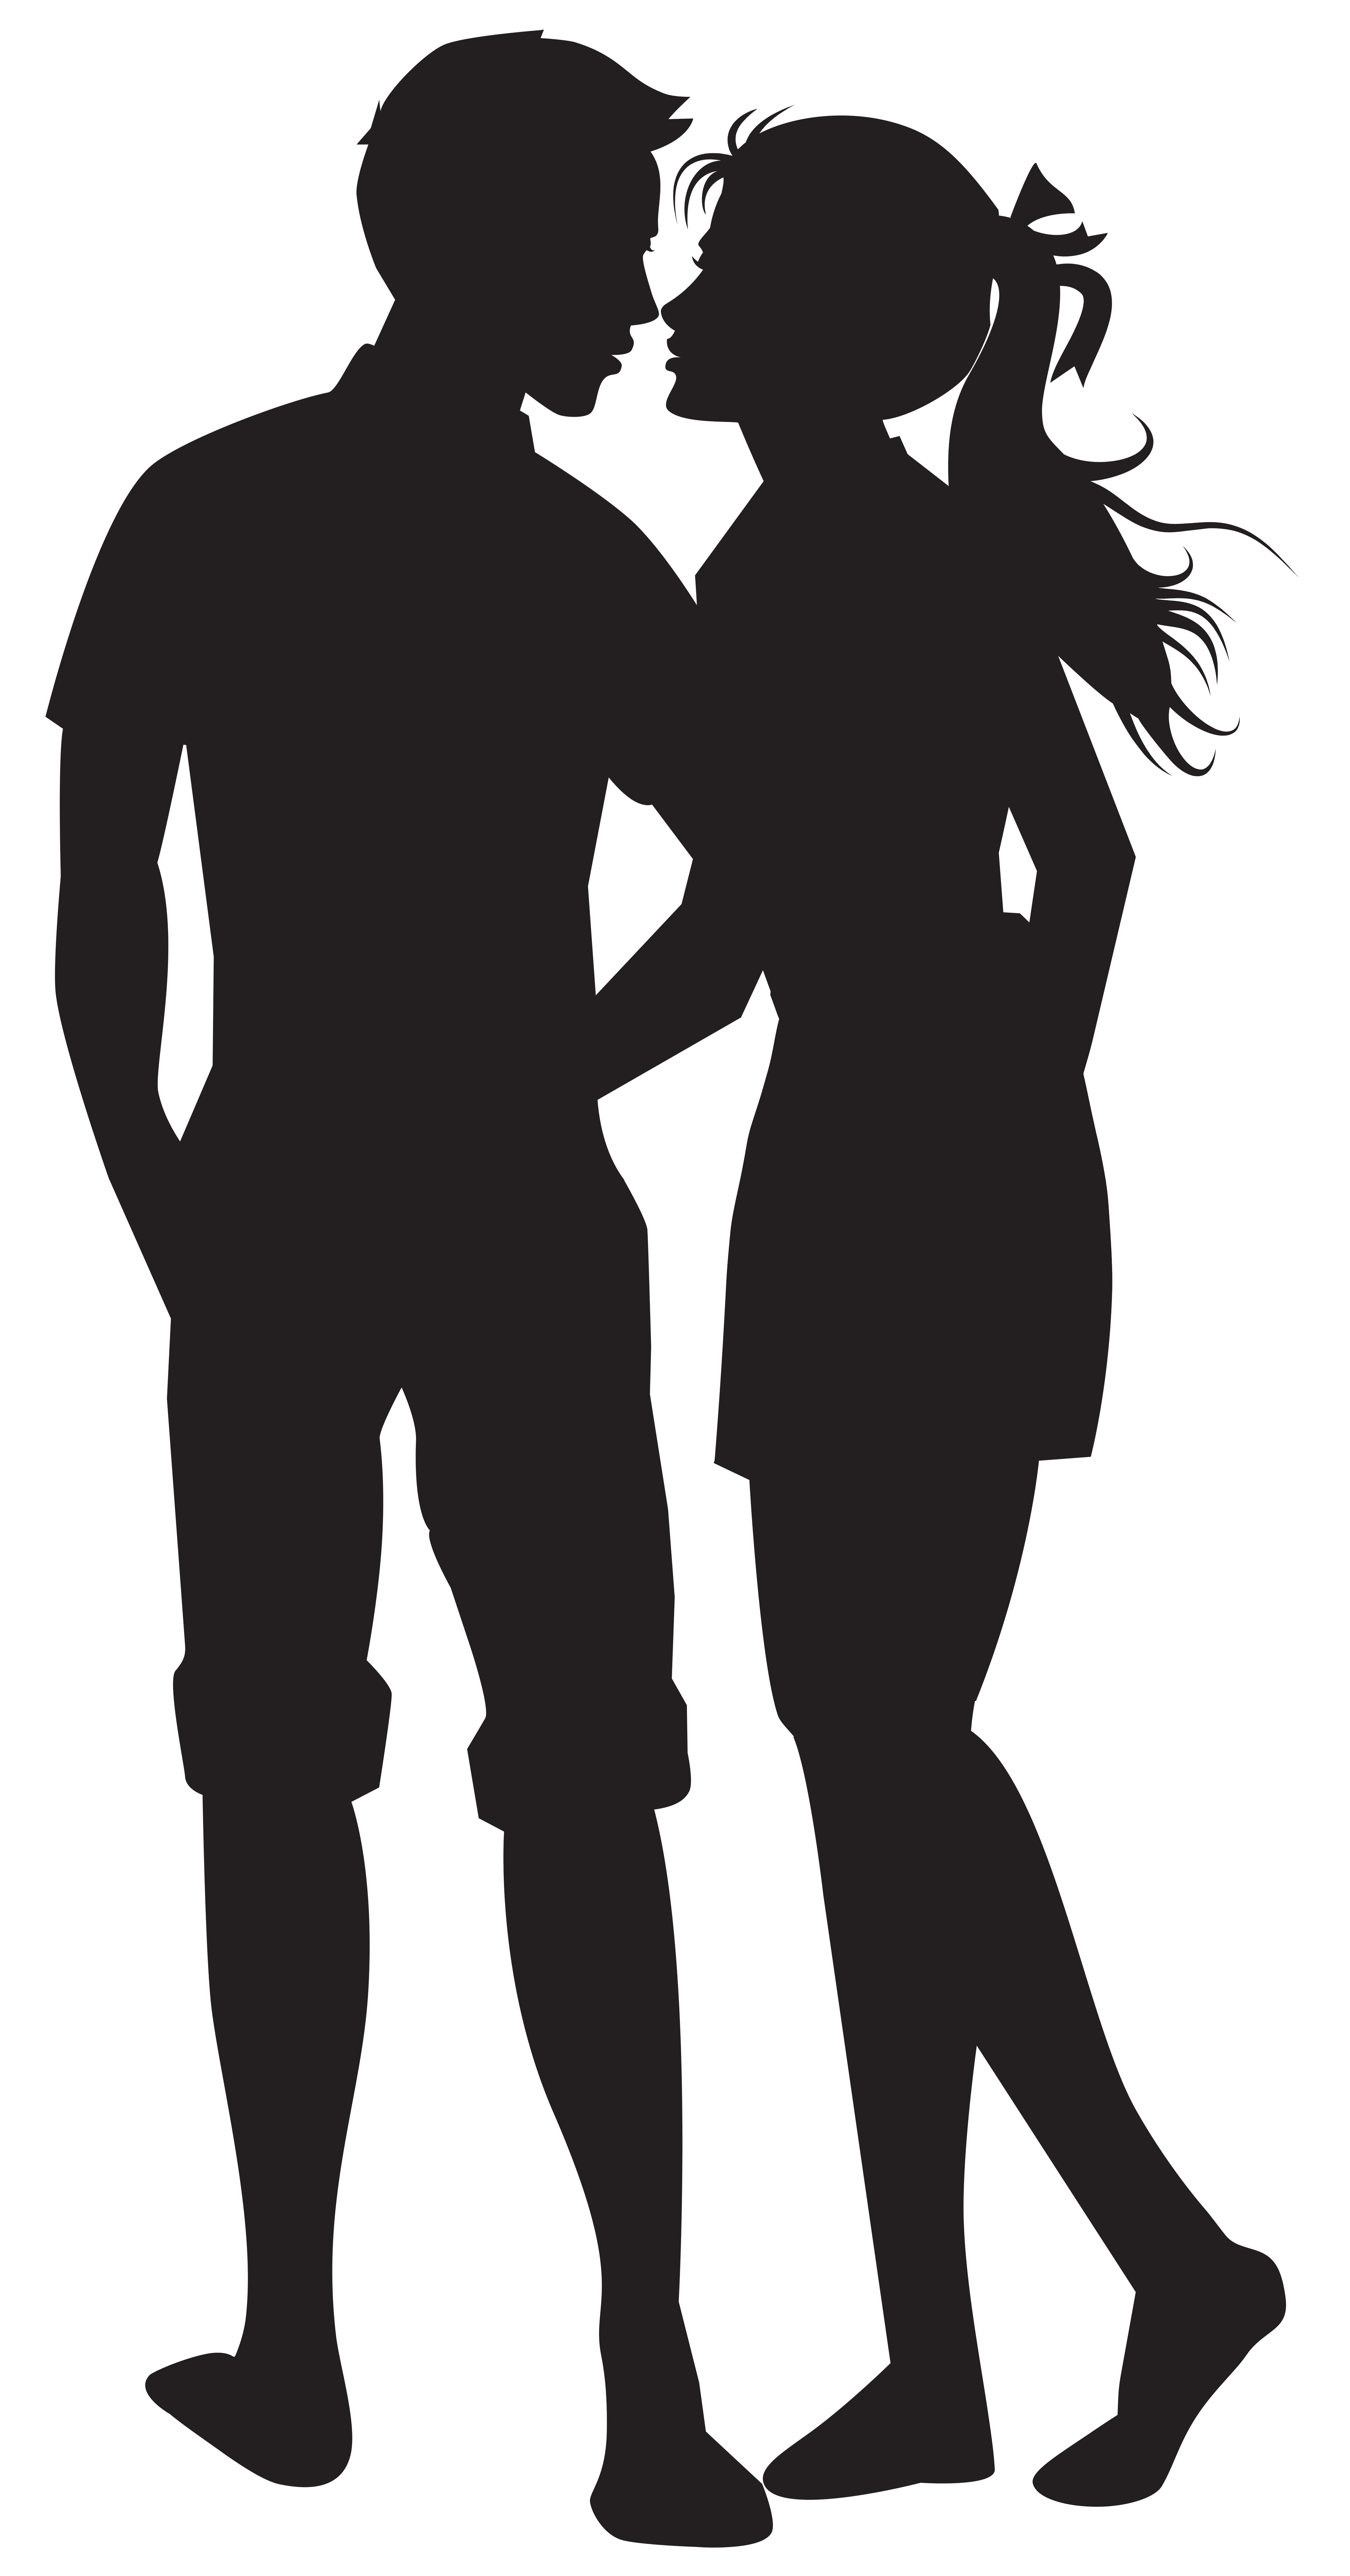 graphic black and white library Couple png silhouettes clip. Vector band shadow